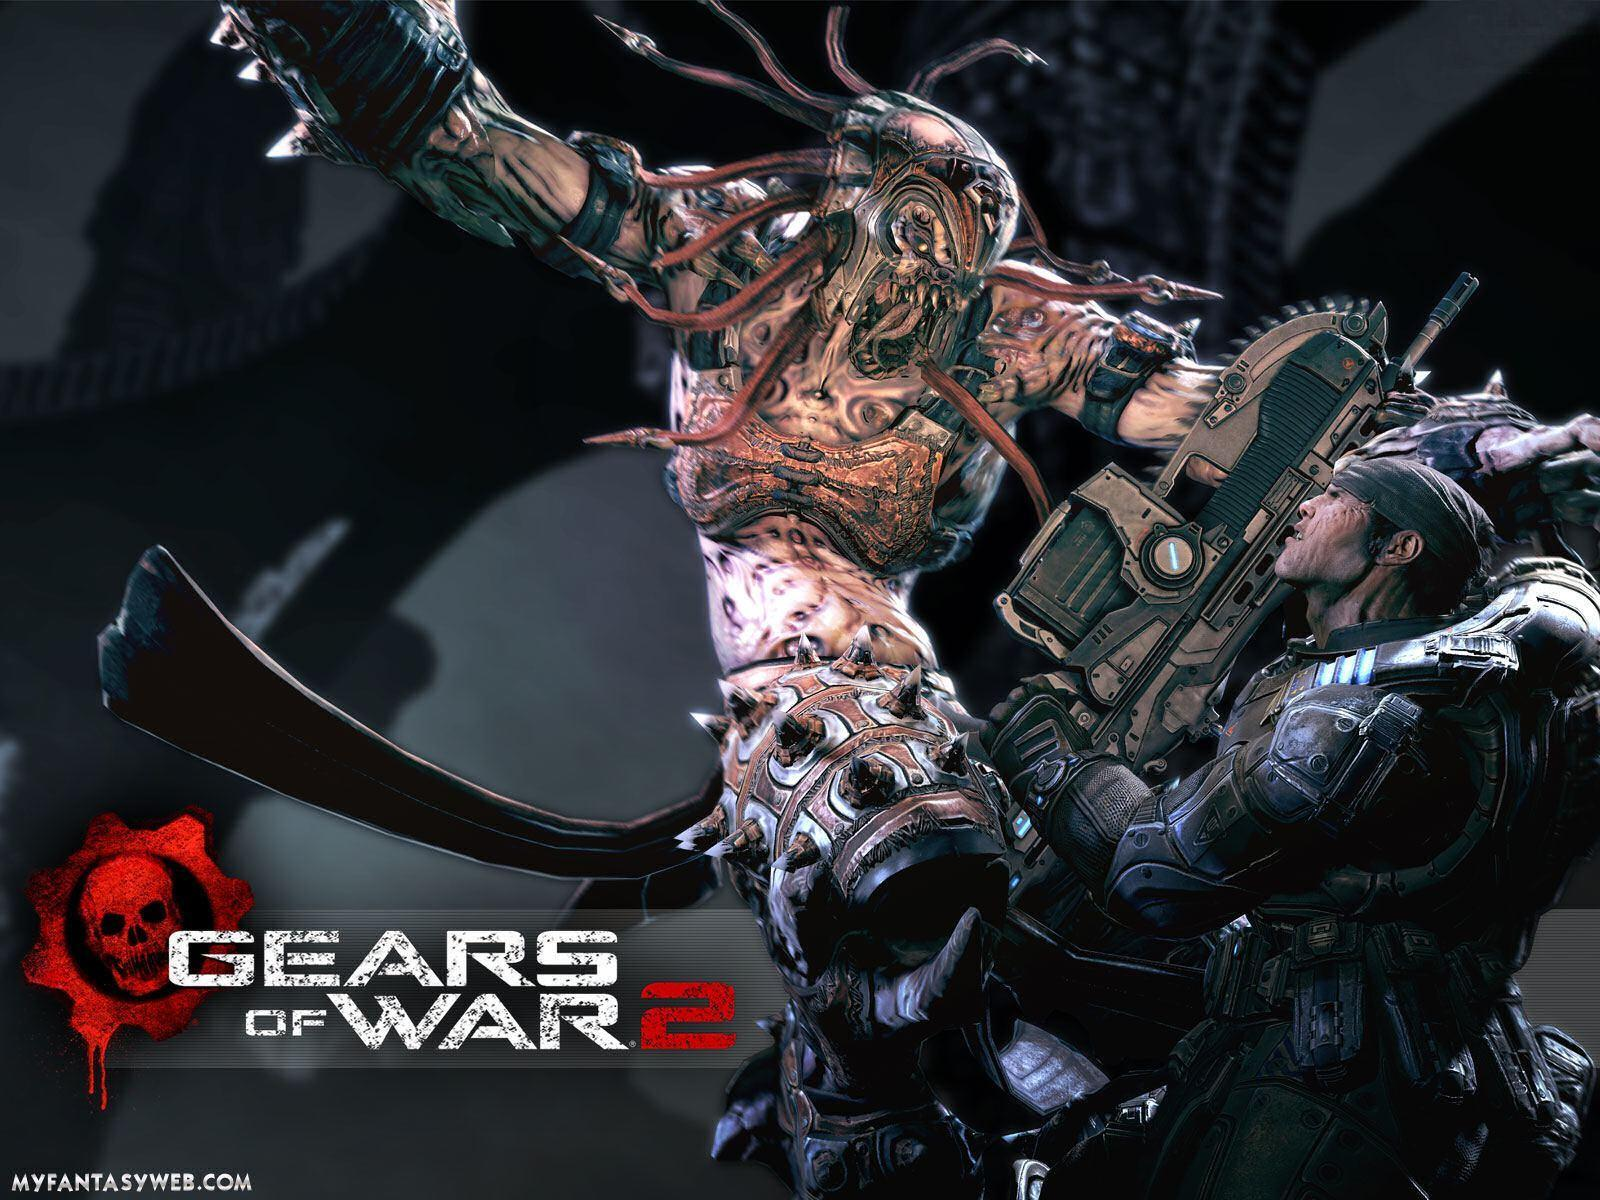 gears of war 2 wallpapers - wallpaper cave